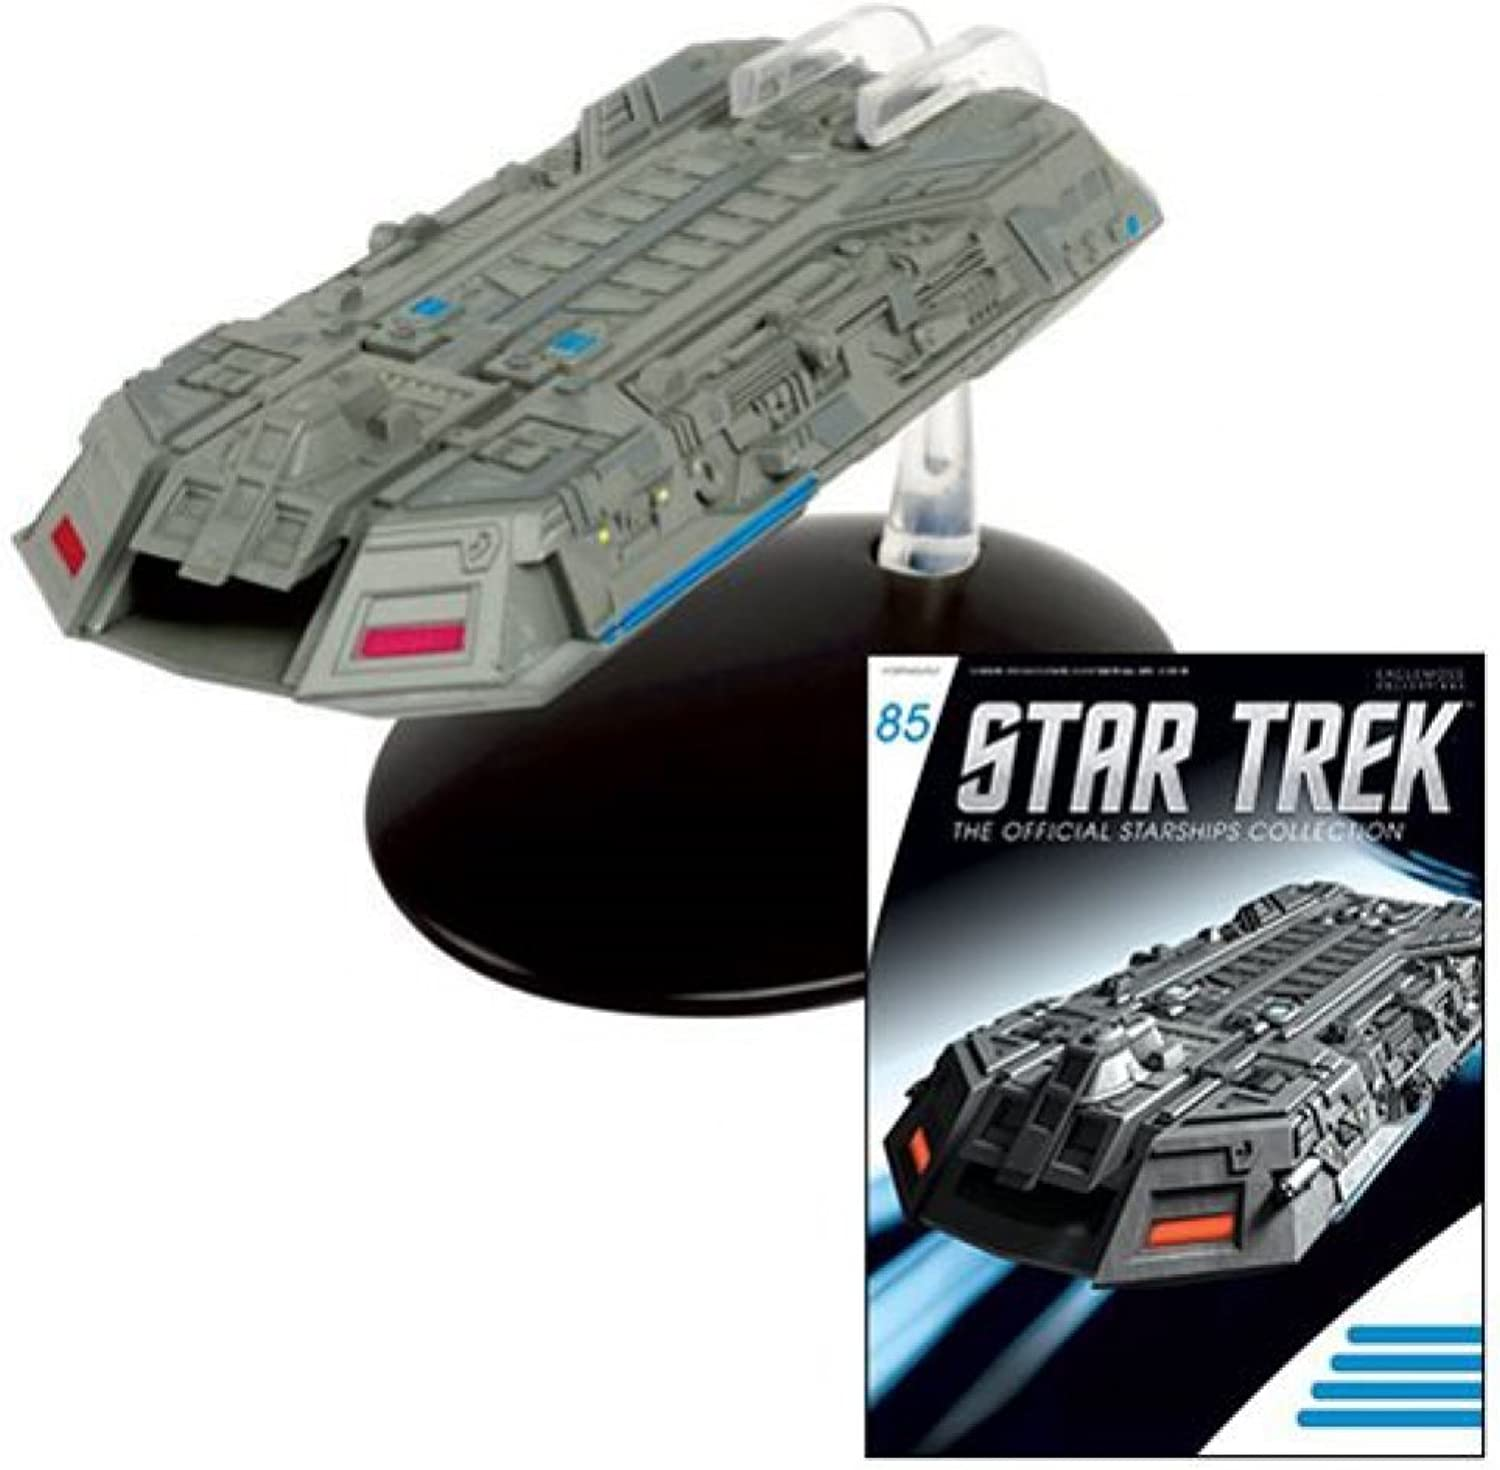 Star Trek Starships Federation Holo Ship Die-Cast Vehicle with Collector Magazine  85